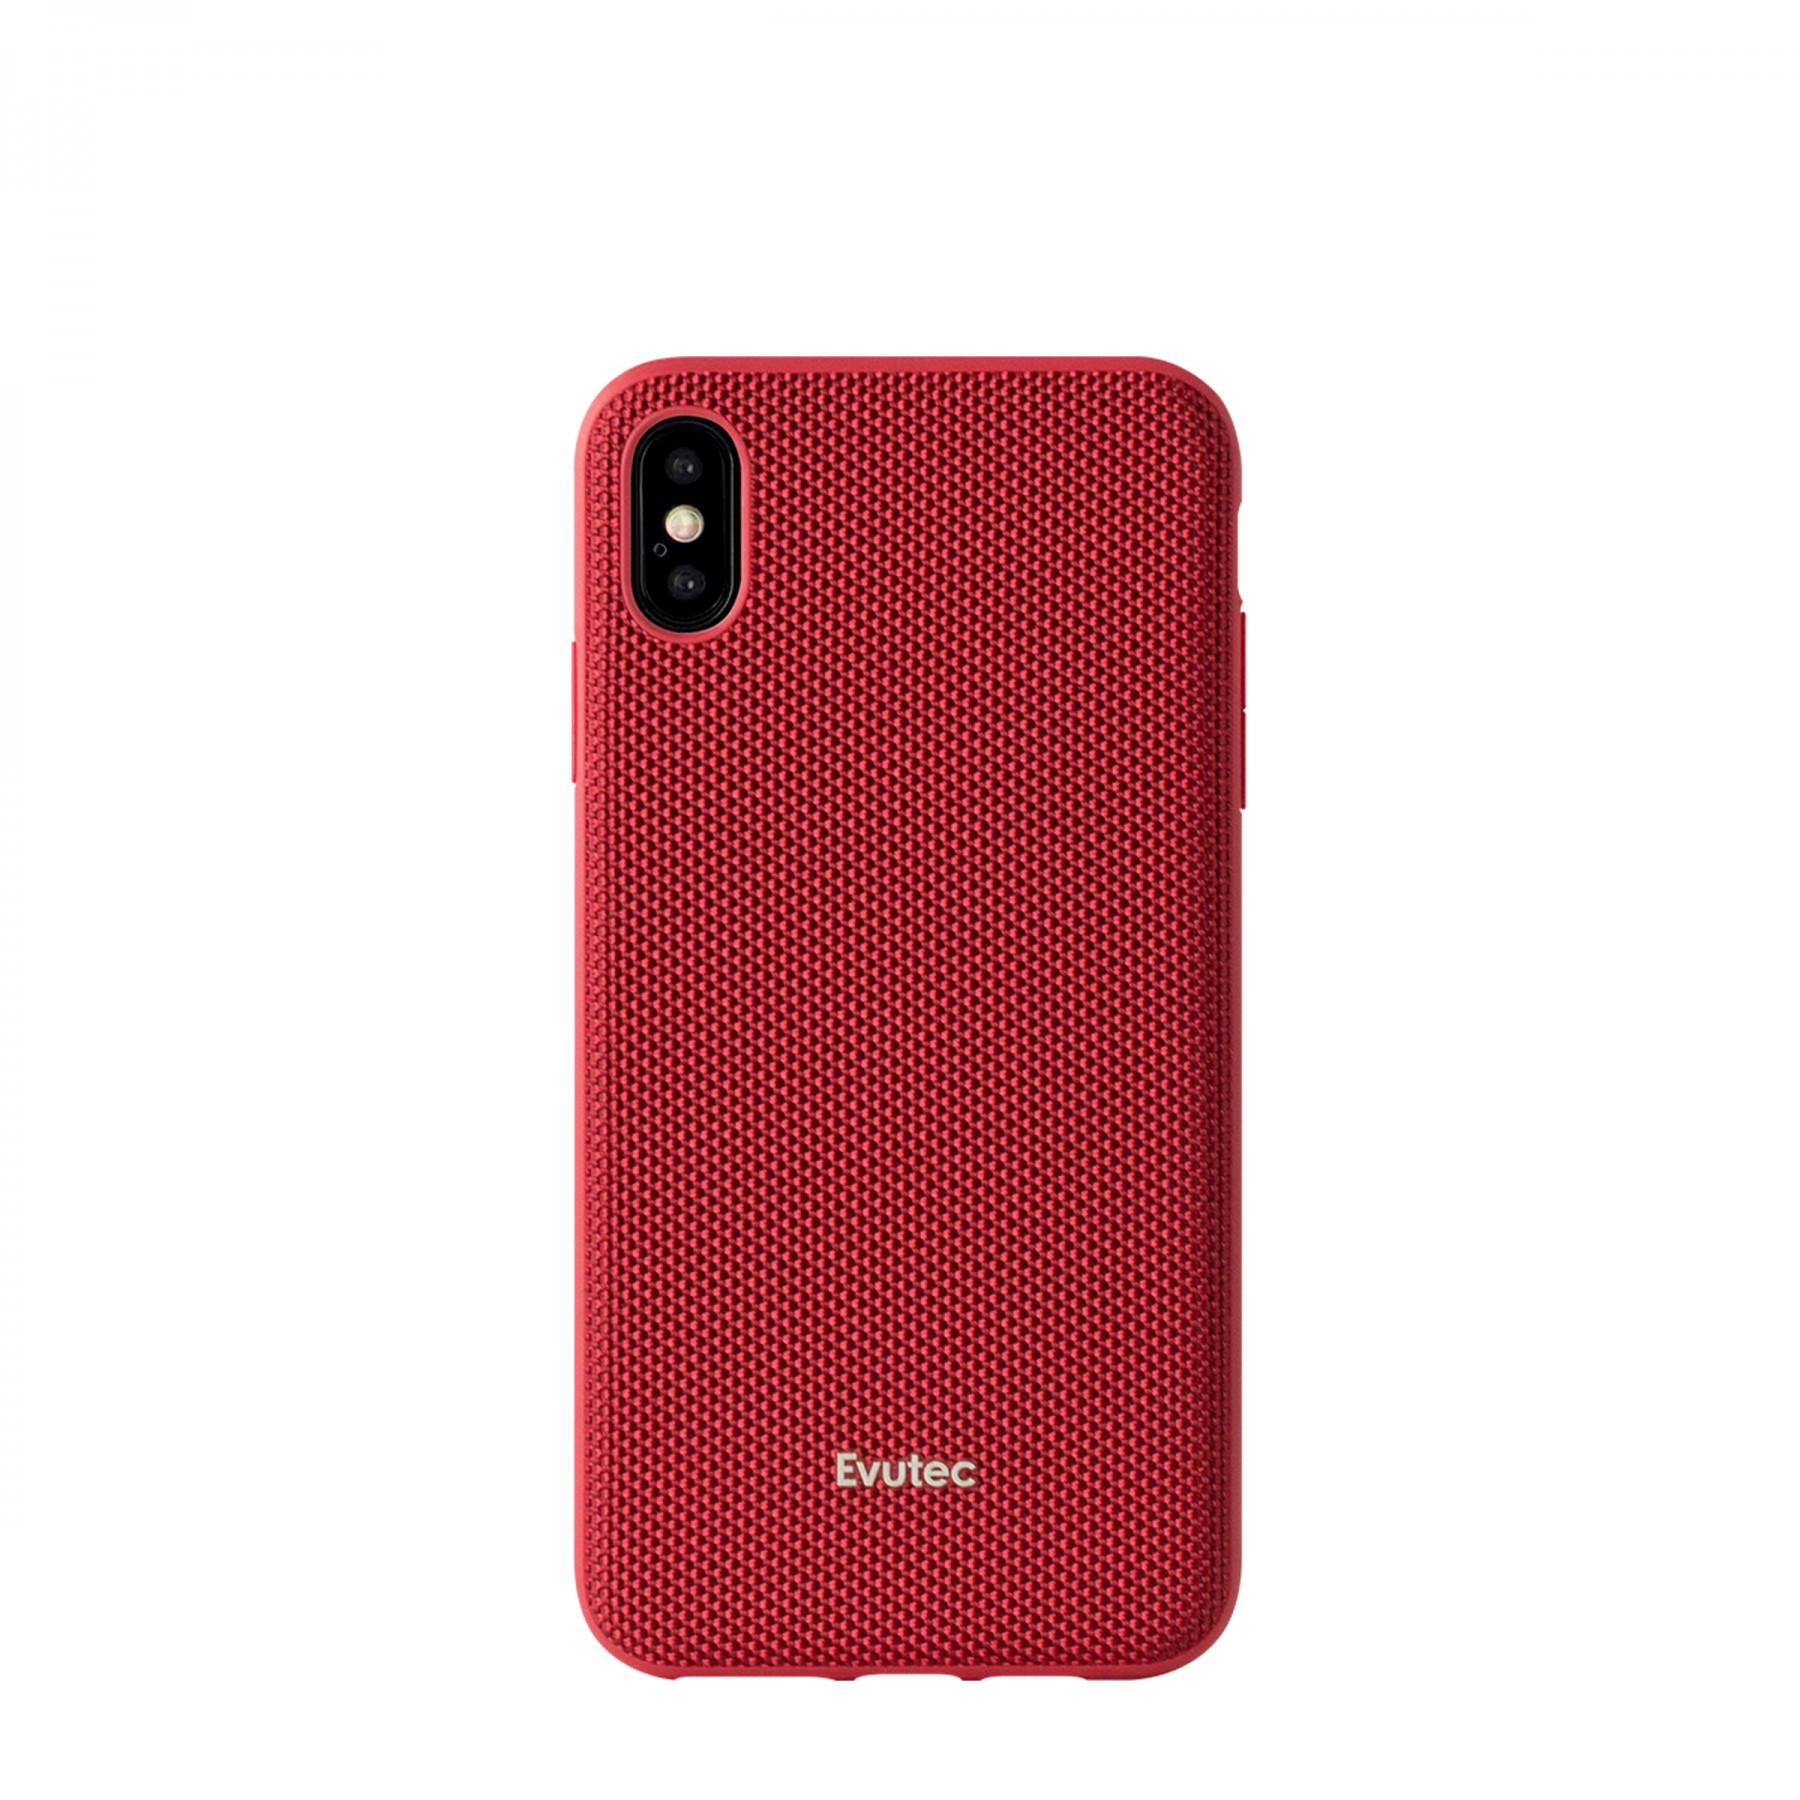 lowest price cc027 8d44f Evutec Ballistic Nylon Aergo Series With Afix Case for iPhone Xs Max - Red